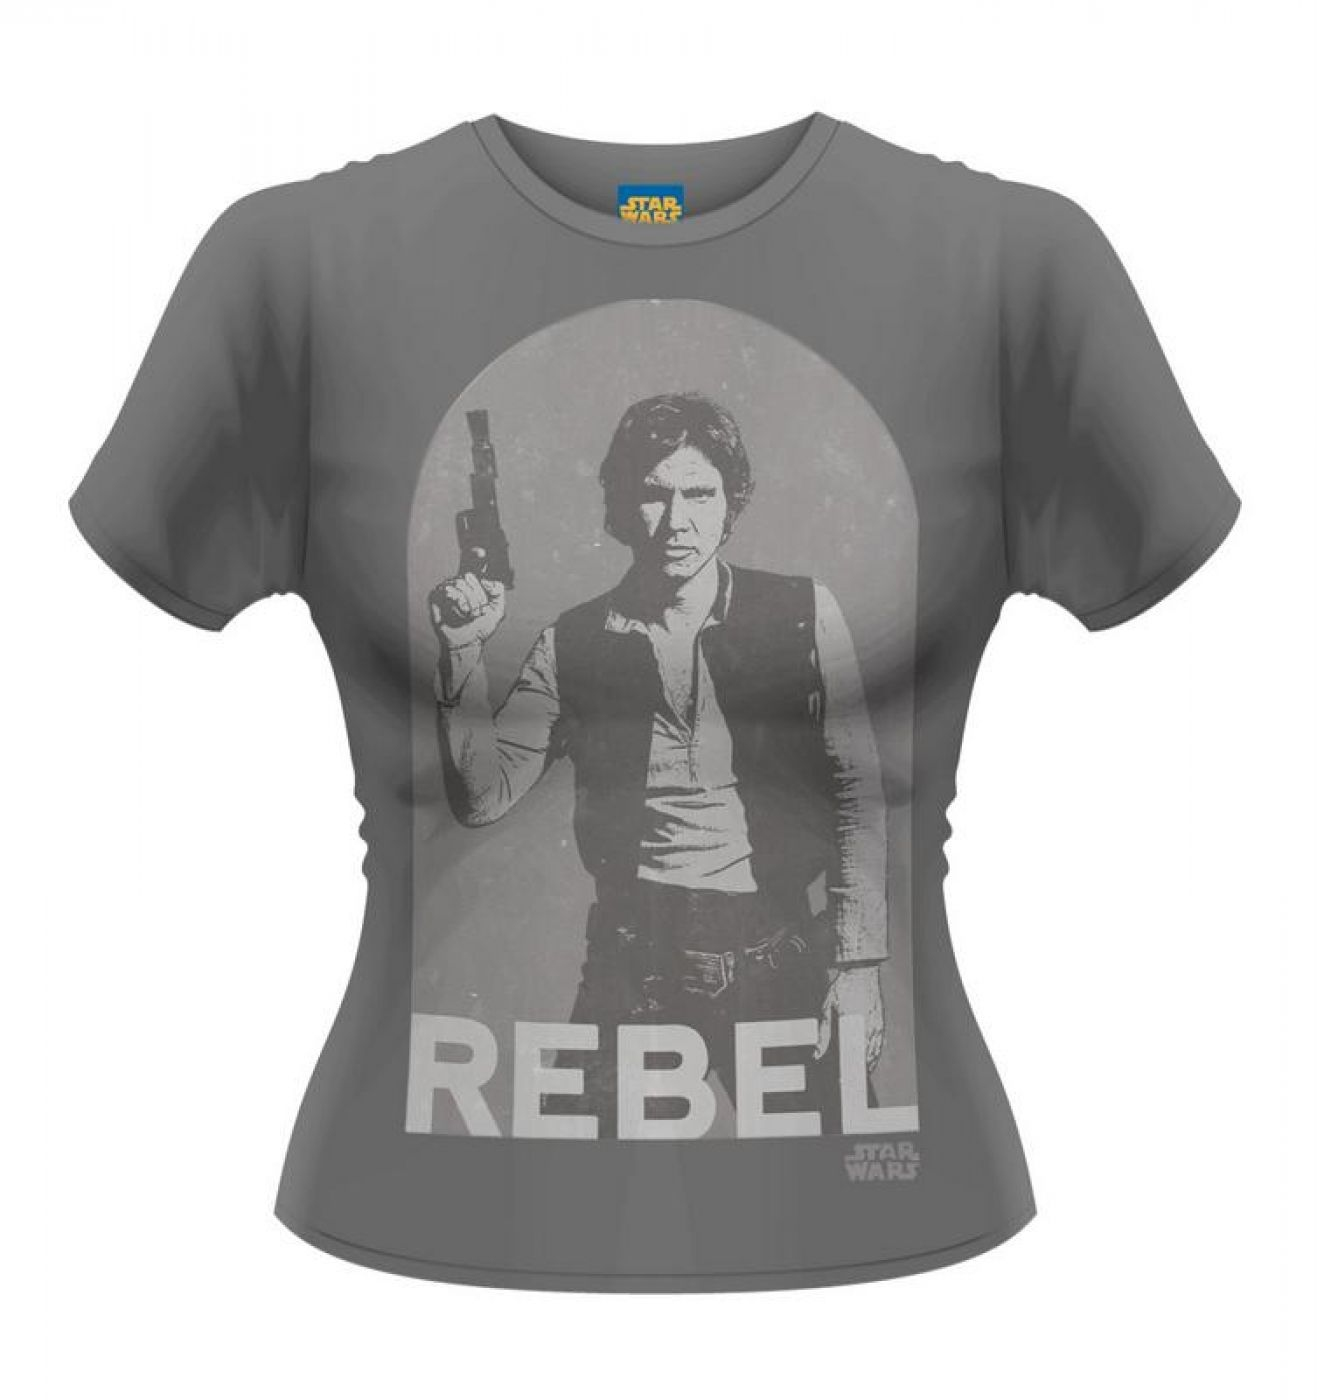 Star Wars Han Solo Rebel women's t-shirt - OFFICIAL STAR WARS MERCHANDISE